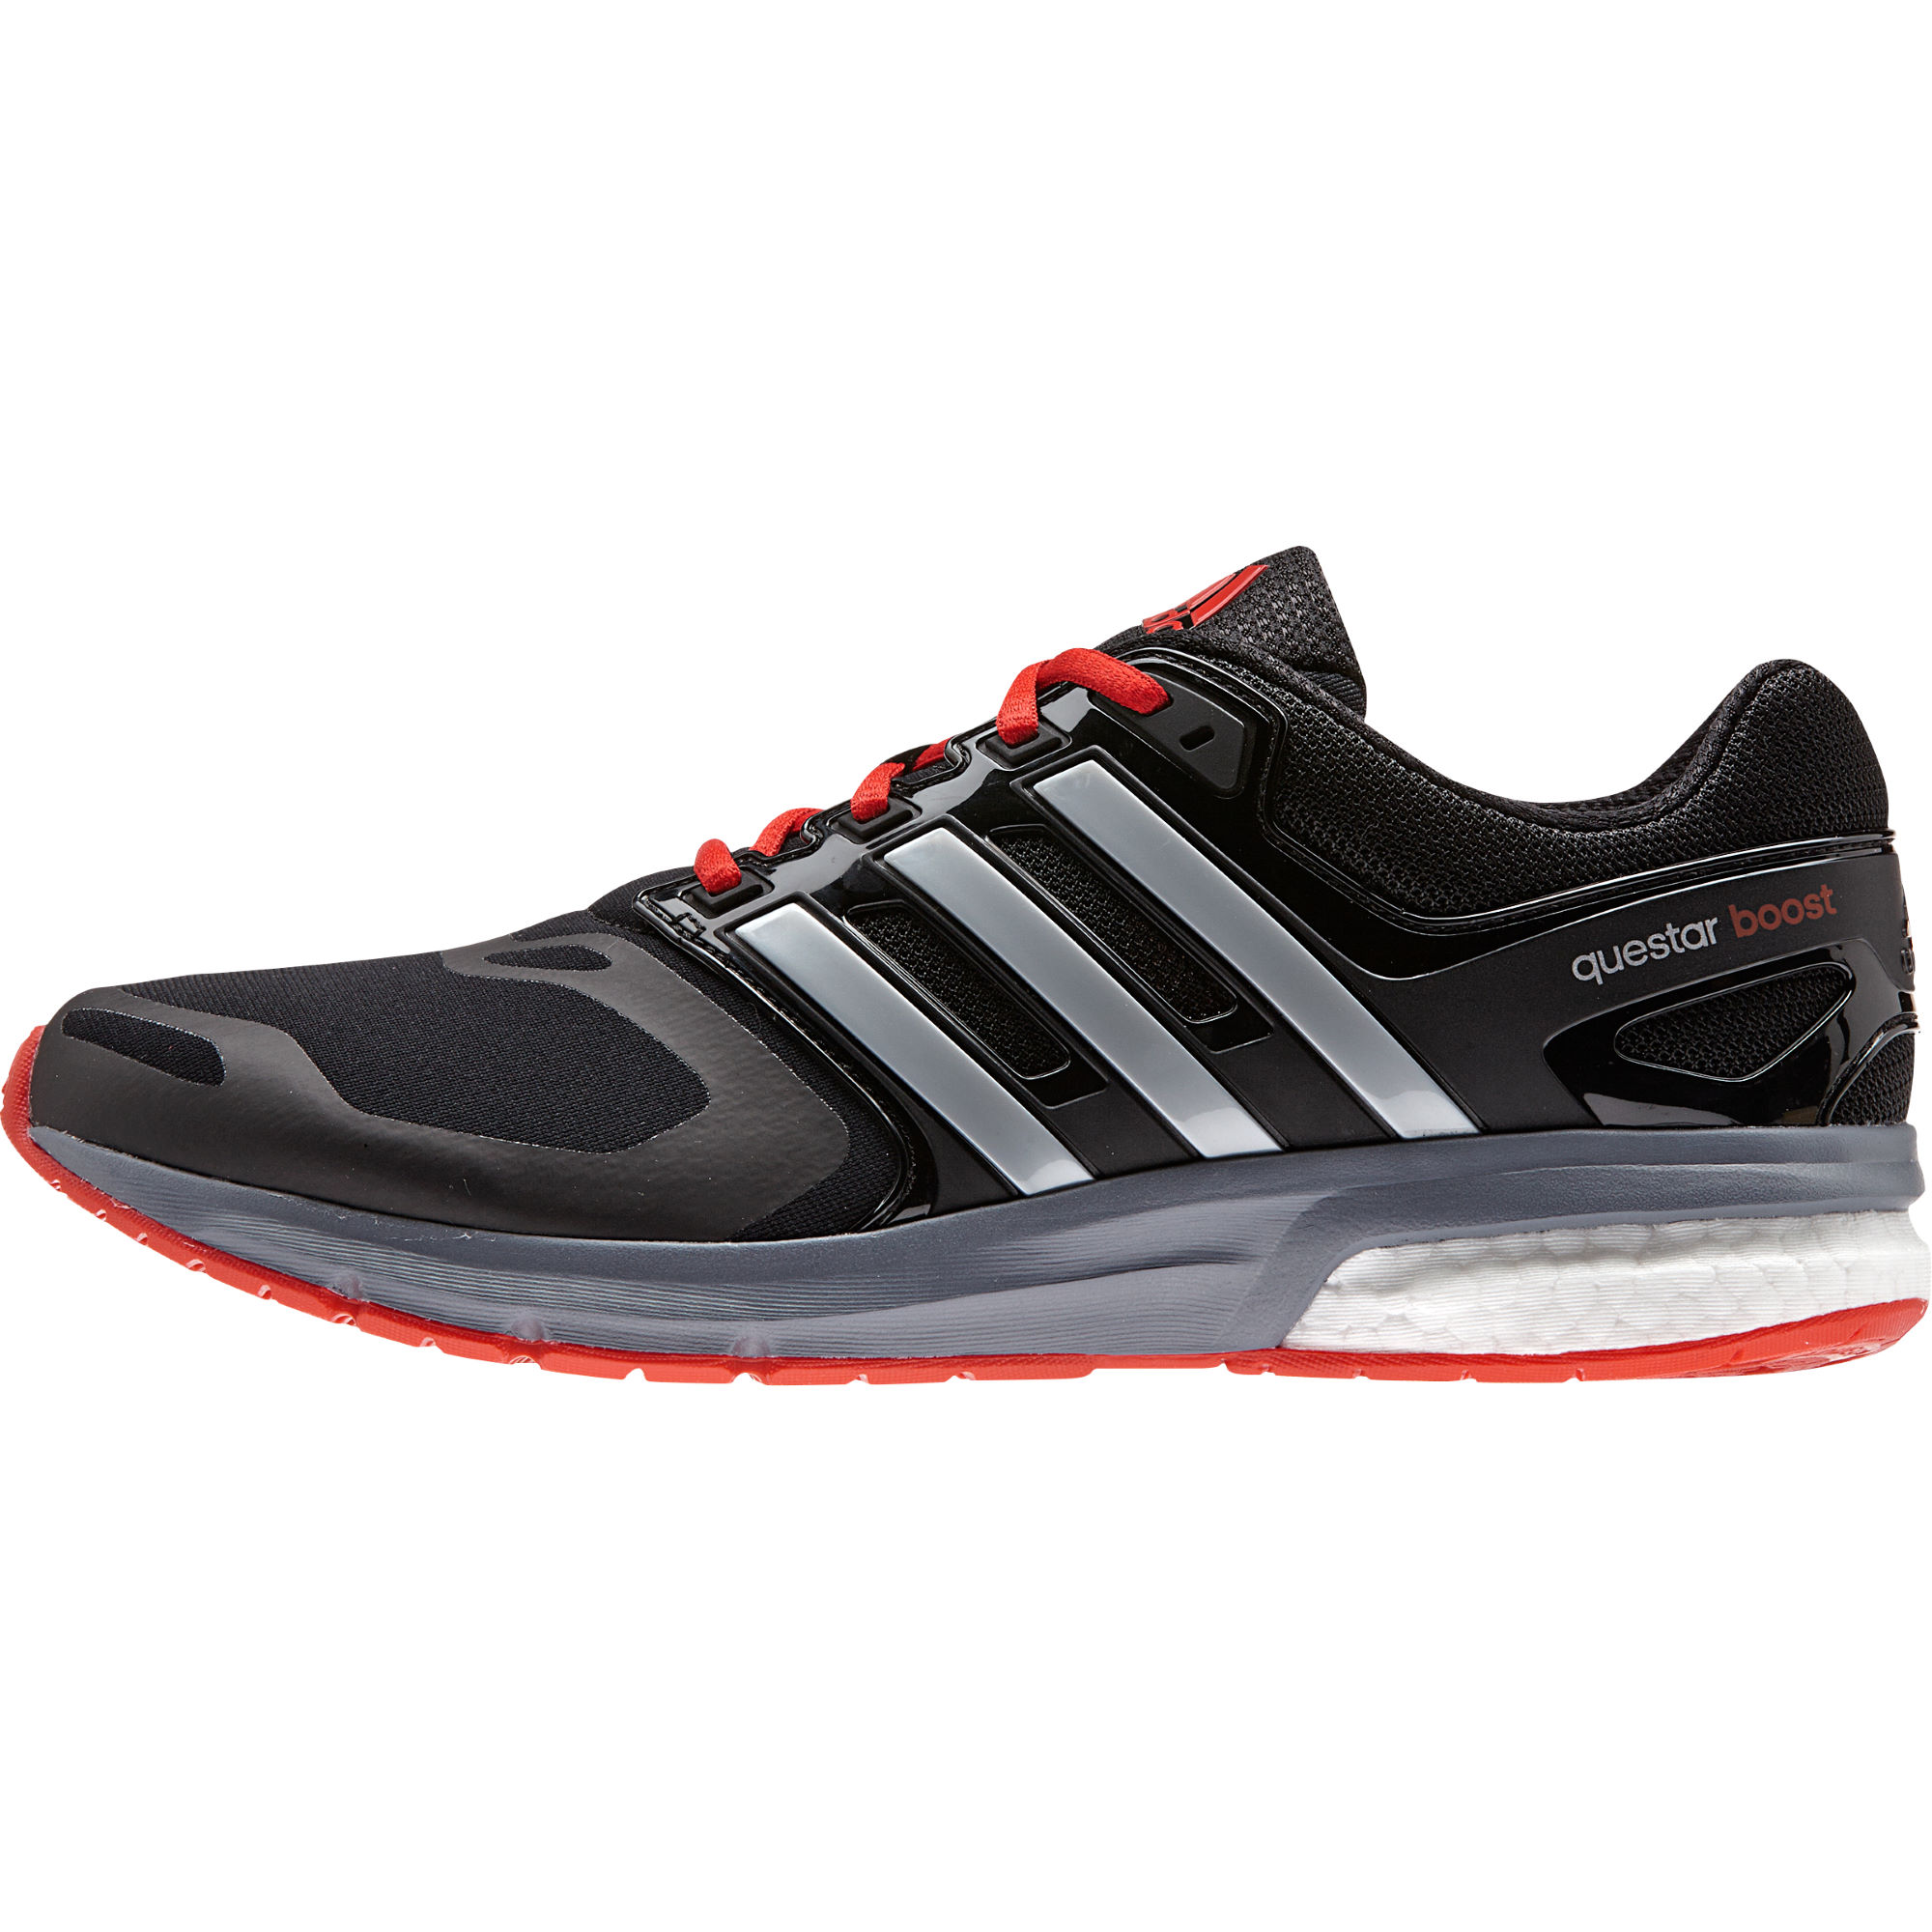 wiggle adidas questar boost tf shoes cushion running shoes